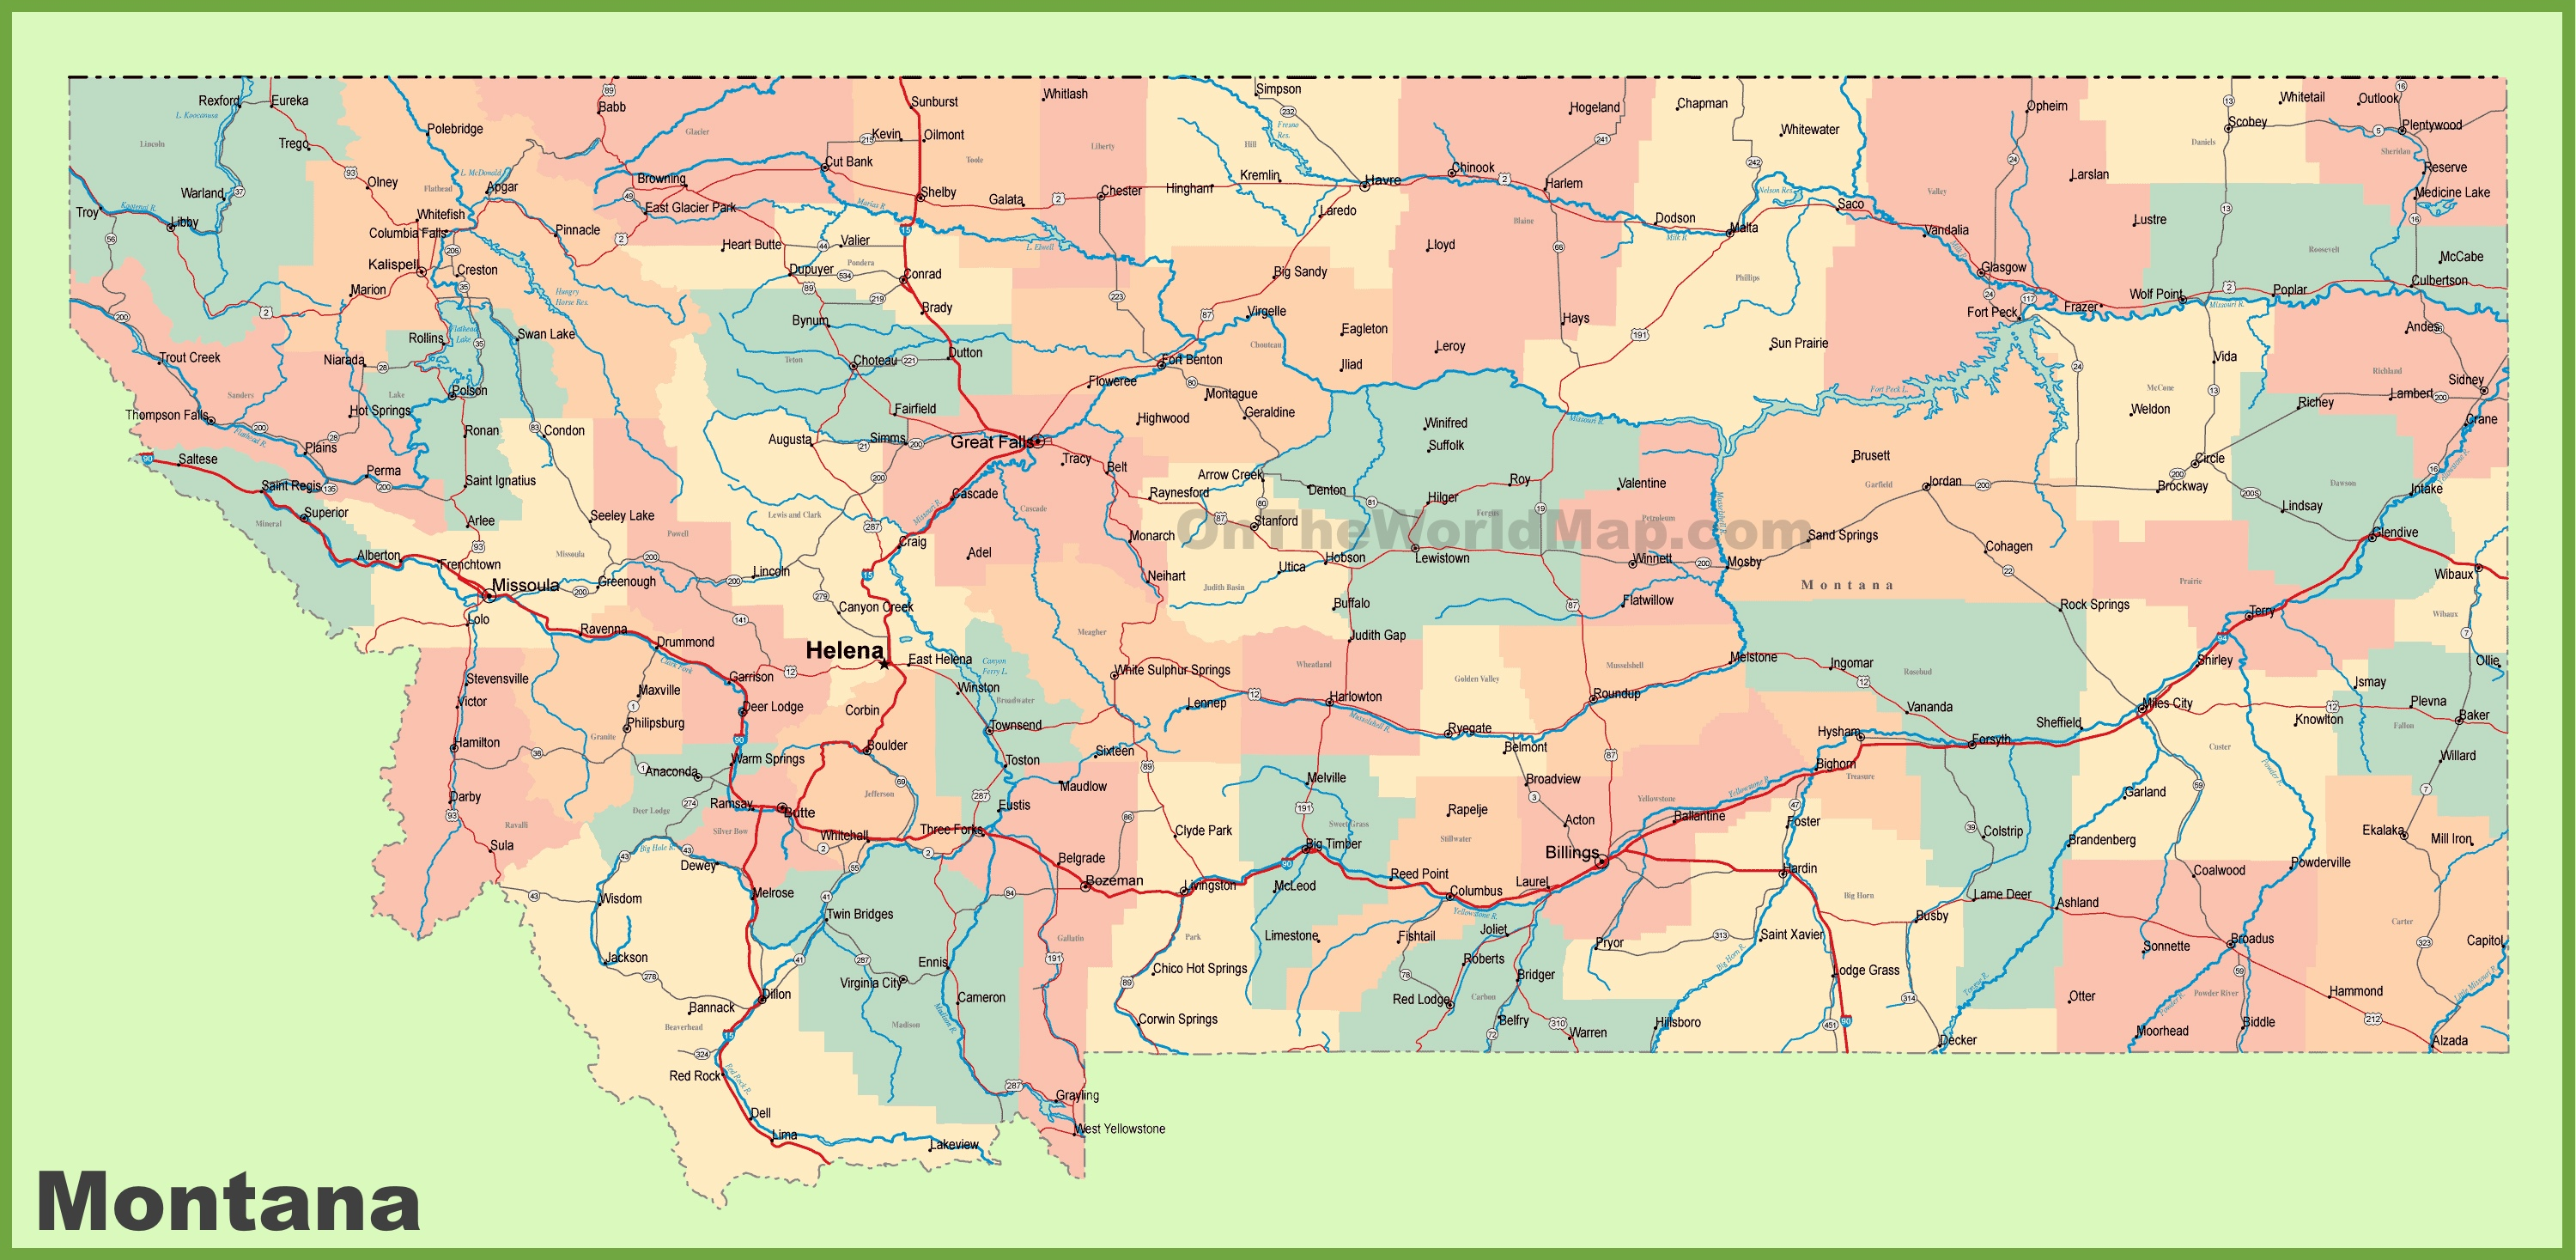 Road Map Of Montana With Cities - Montana map